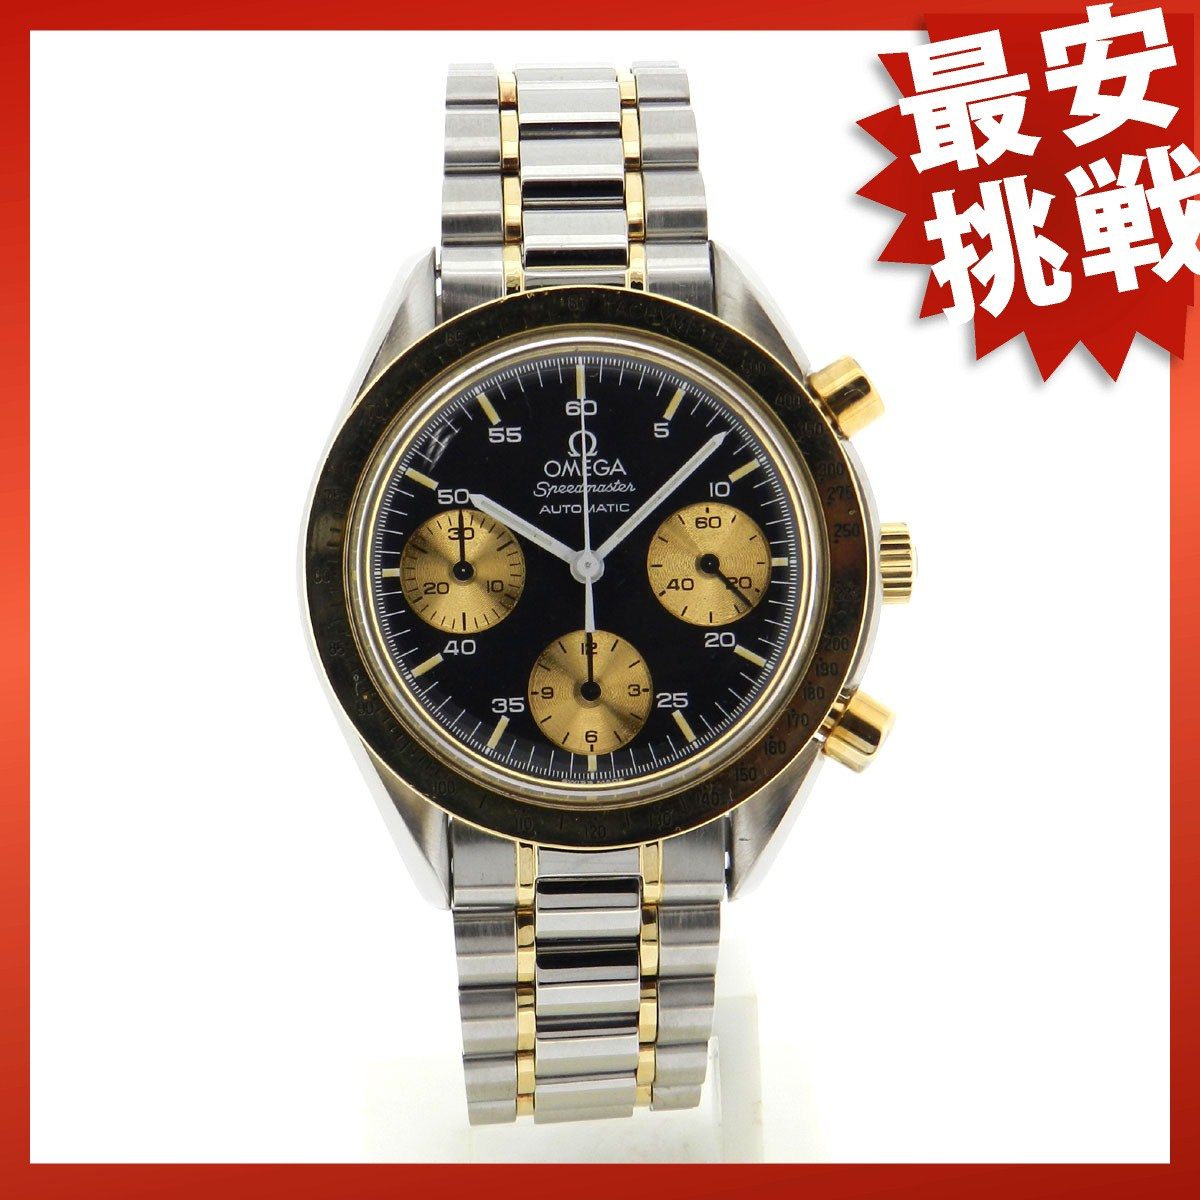 OMEGA speed master watch SS men